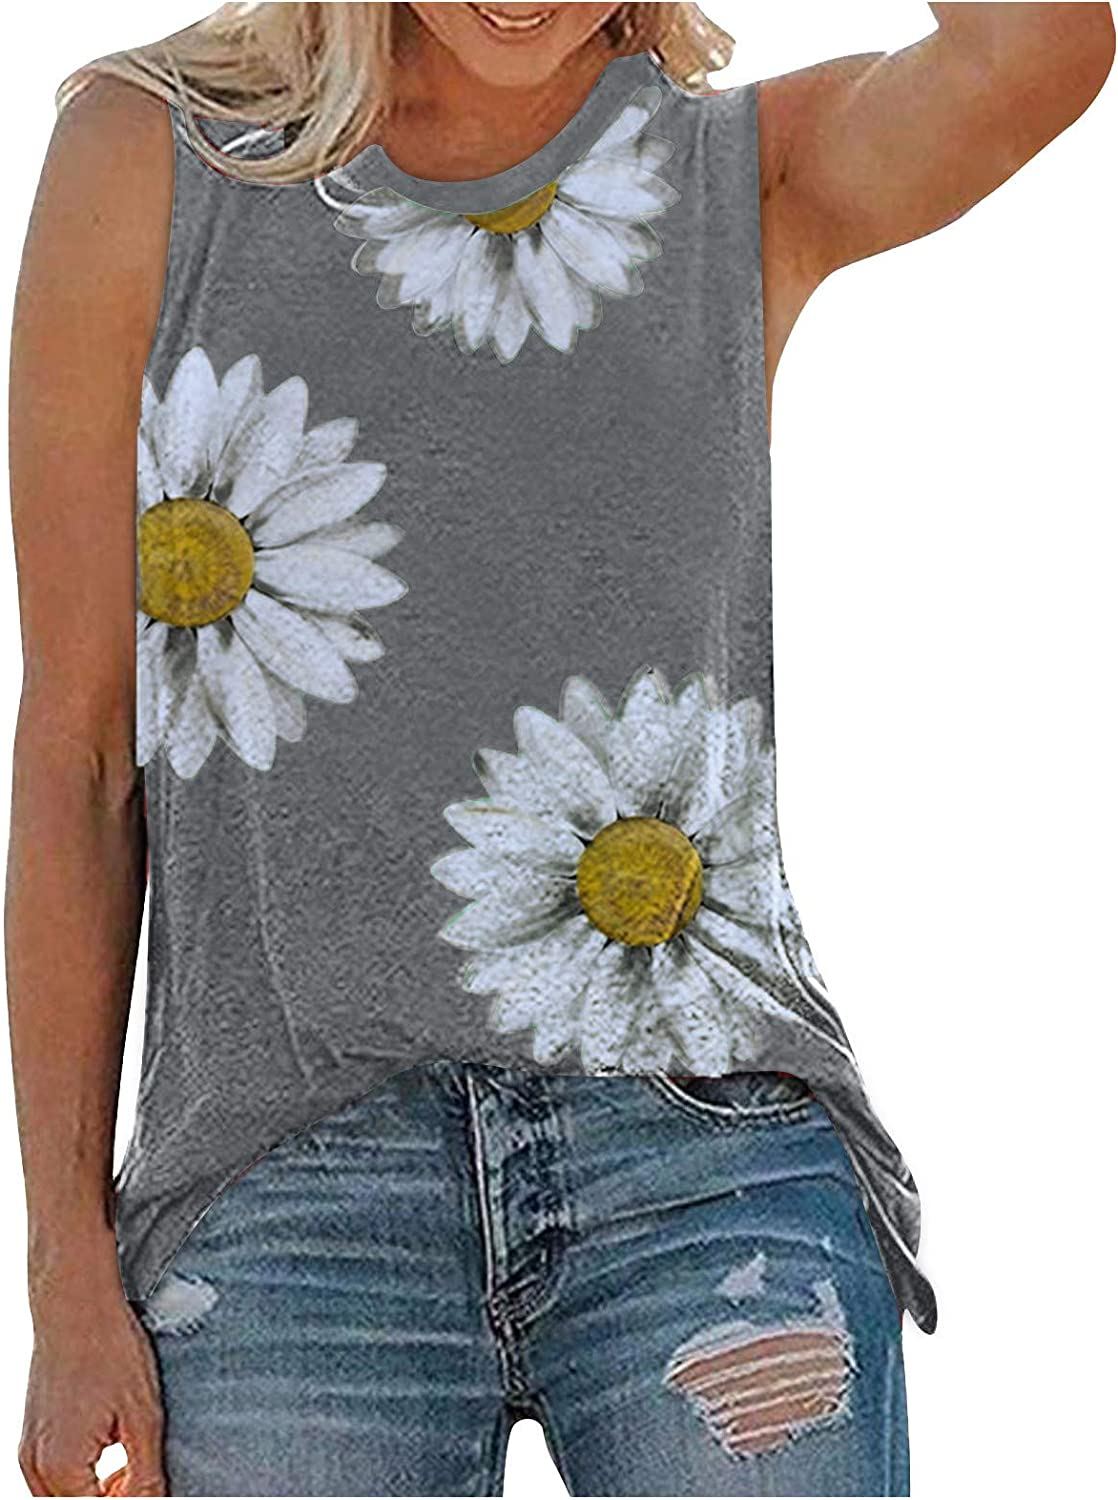 AODONG Tank Tops for Women, Womens Casual Summer Sleeveless Loose Fit Graphic Tank Vest Tees Shirts Blouses Tunics